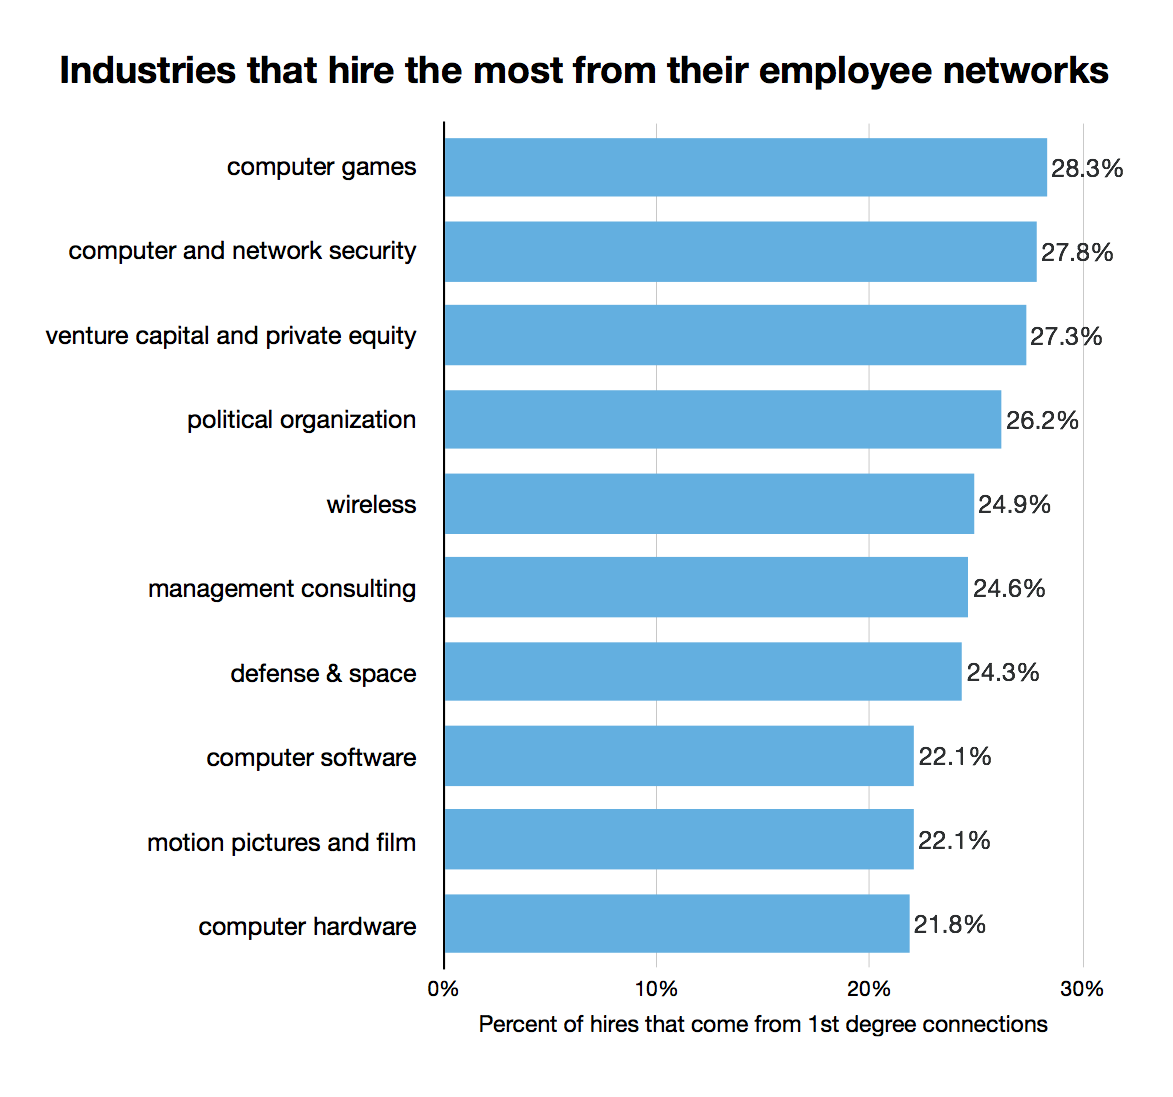 linkedin data your employees personal networks matter linkedin industries that require highly specialized skills tend to rely more on their employee networks and vice versa